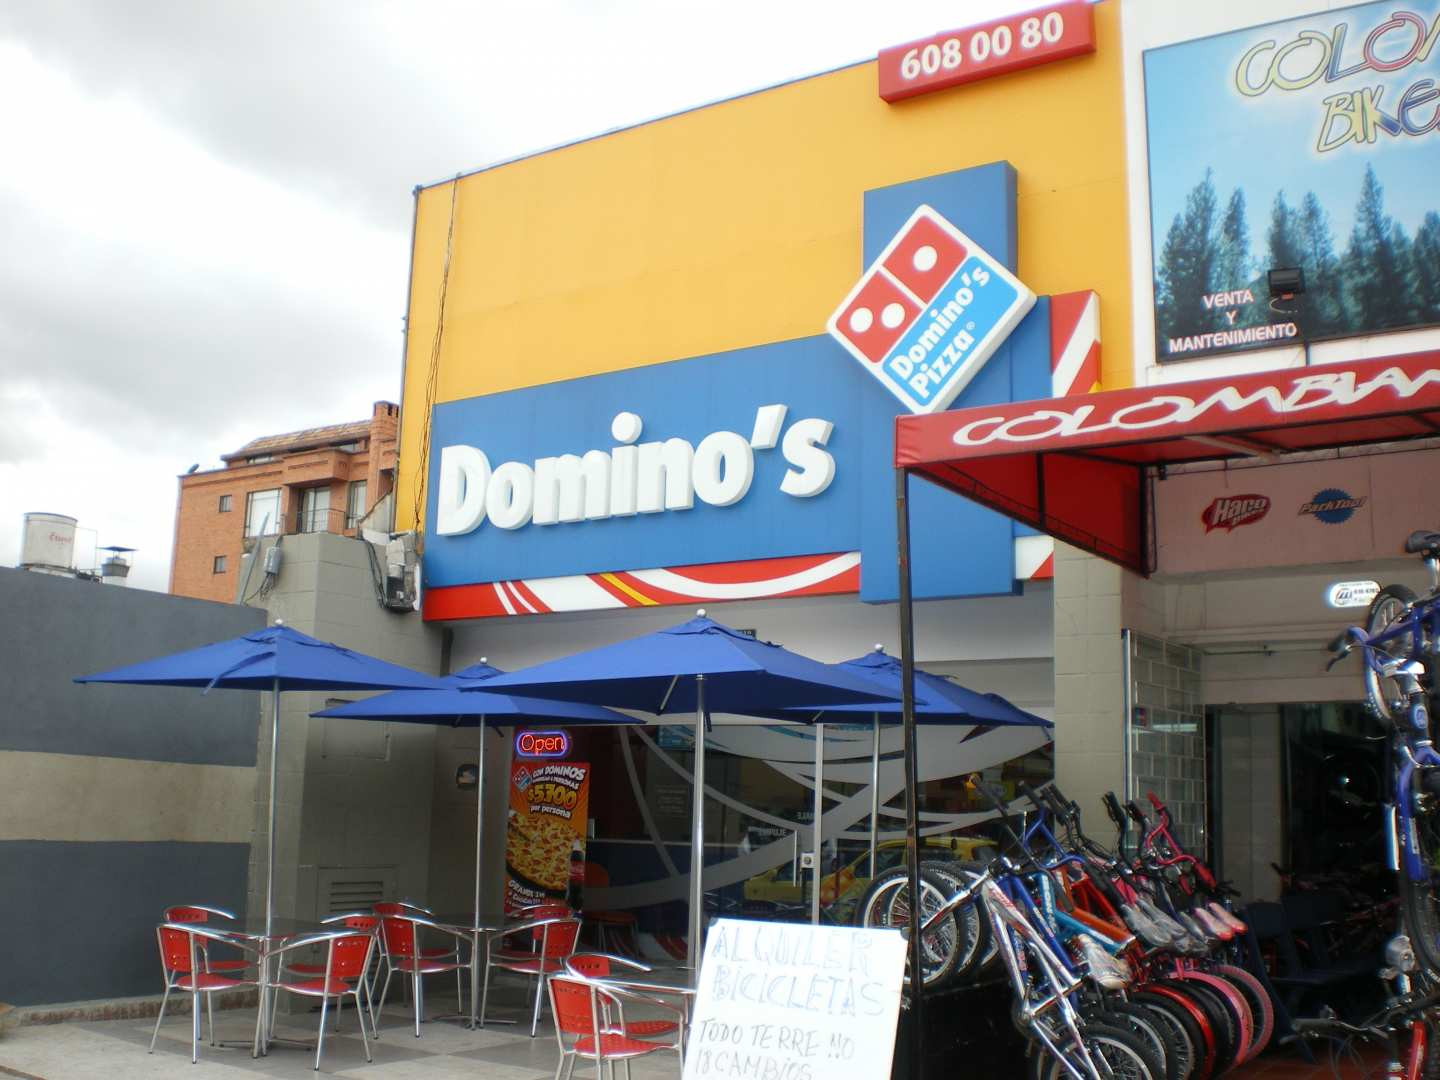 Domino's Pizza (Cedritos)